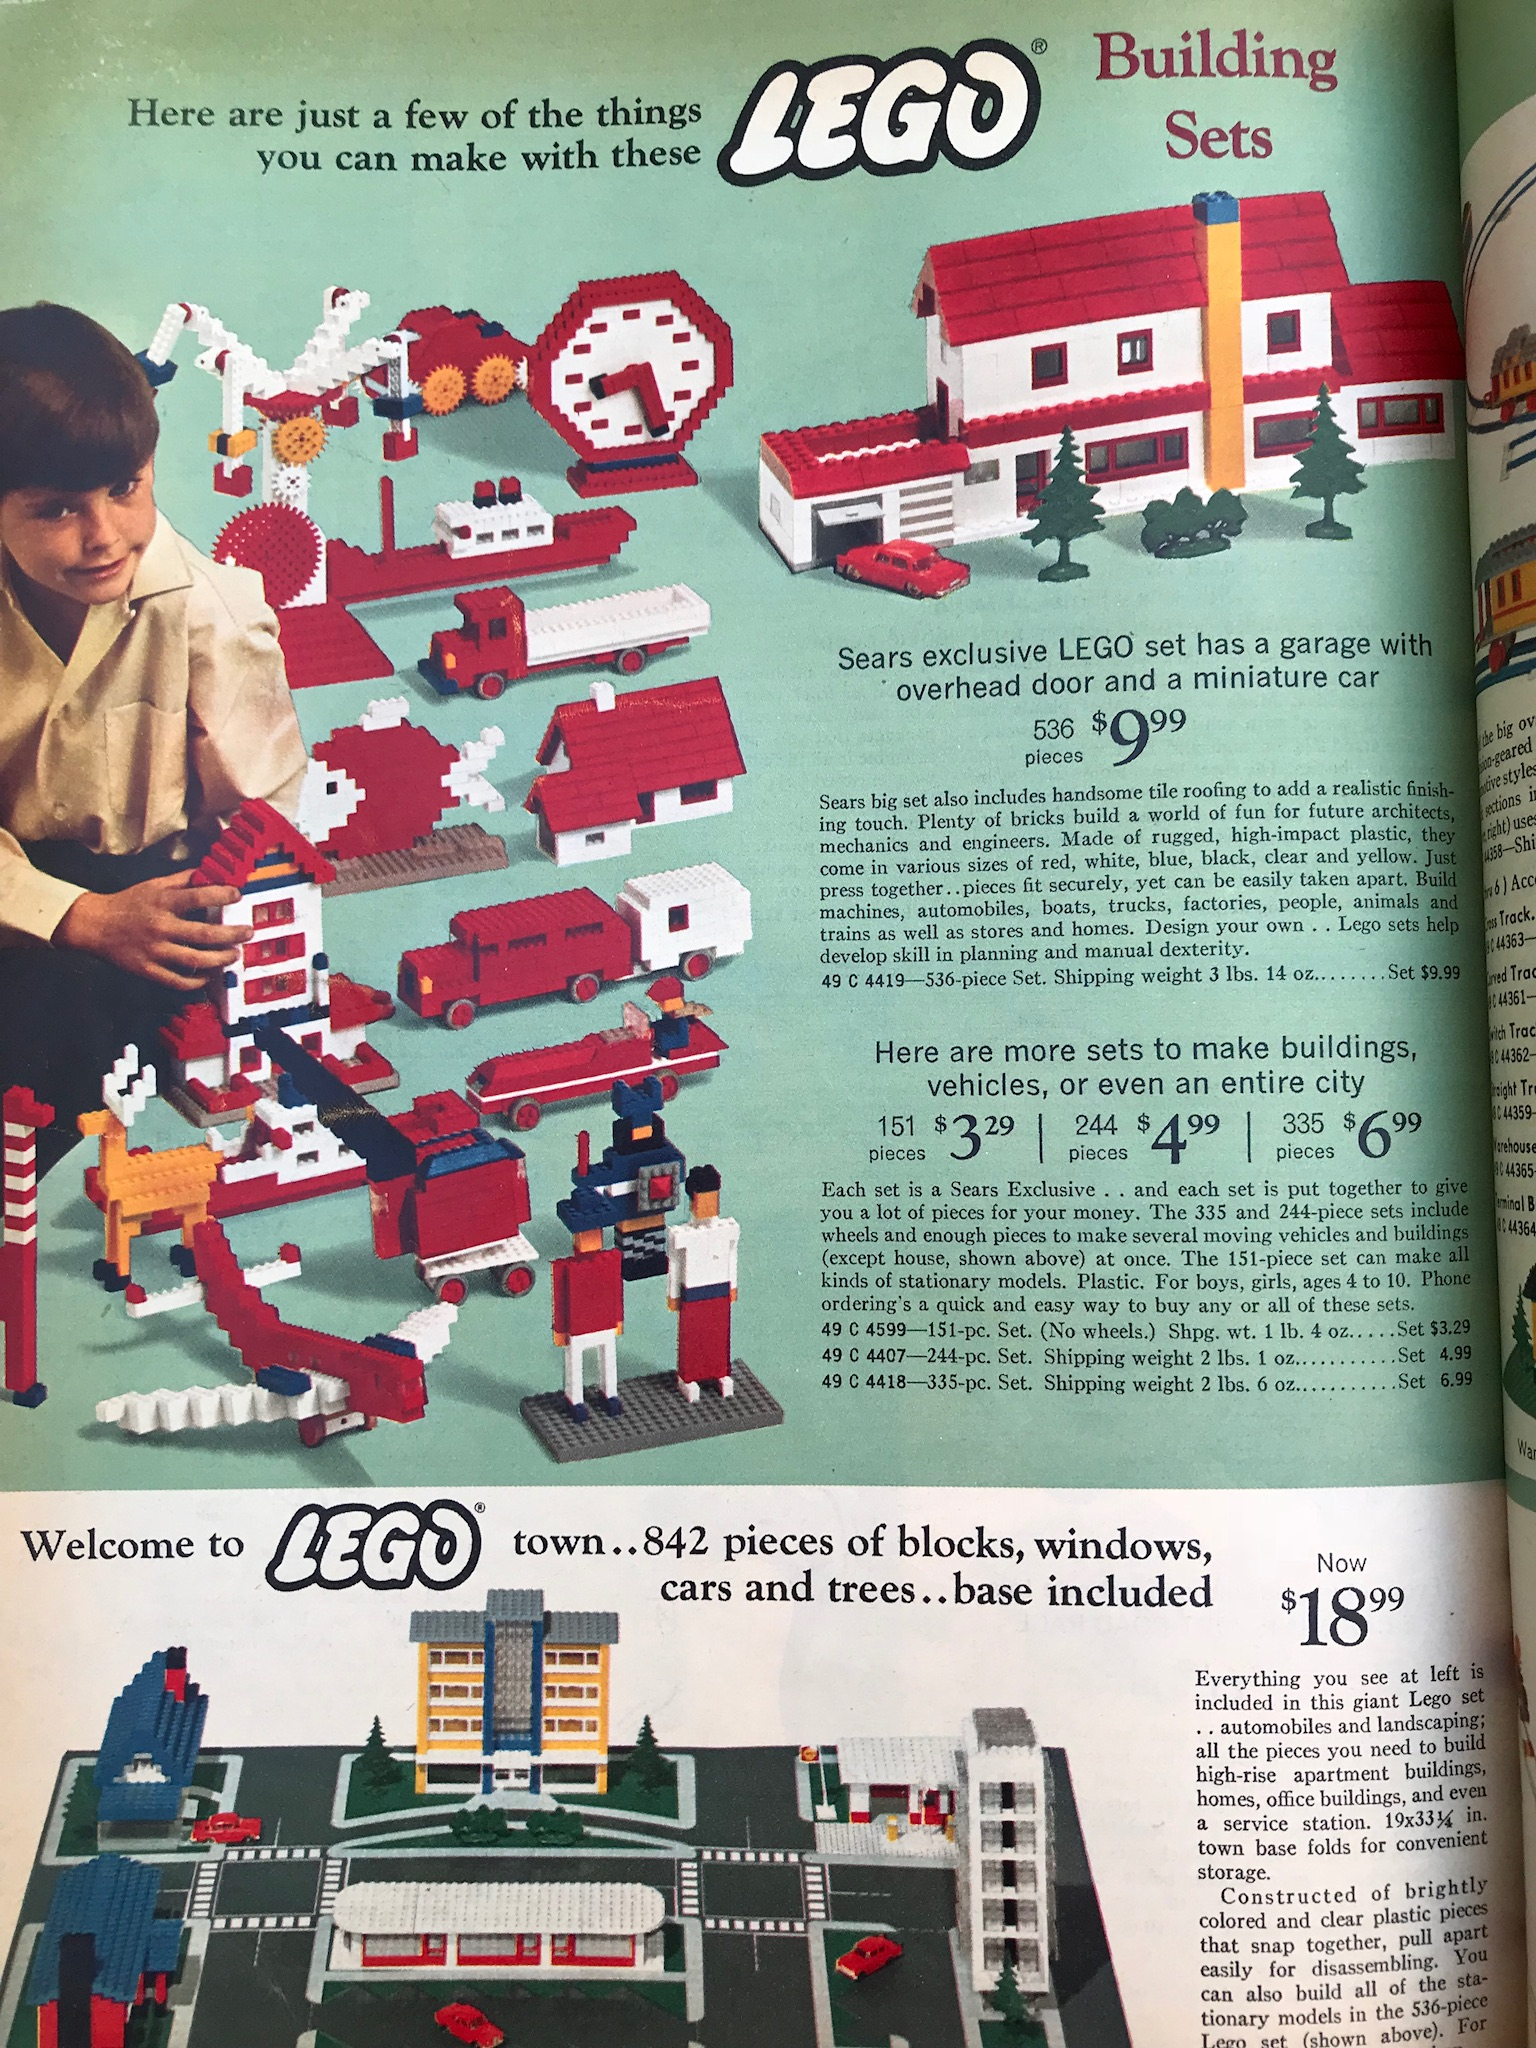 ce645a79d5db My husband saved this catalog from his childhood. It is part of our  Christmas decor. I thought you all might enjoy seeing the prices and pieces  of these old ...